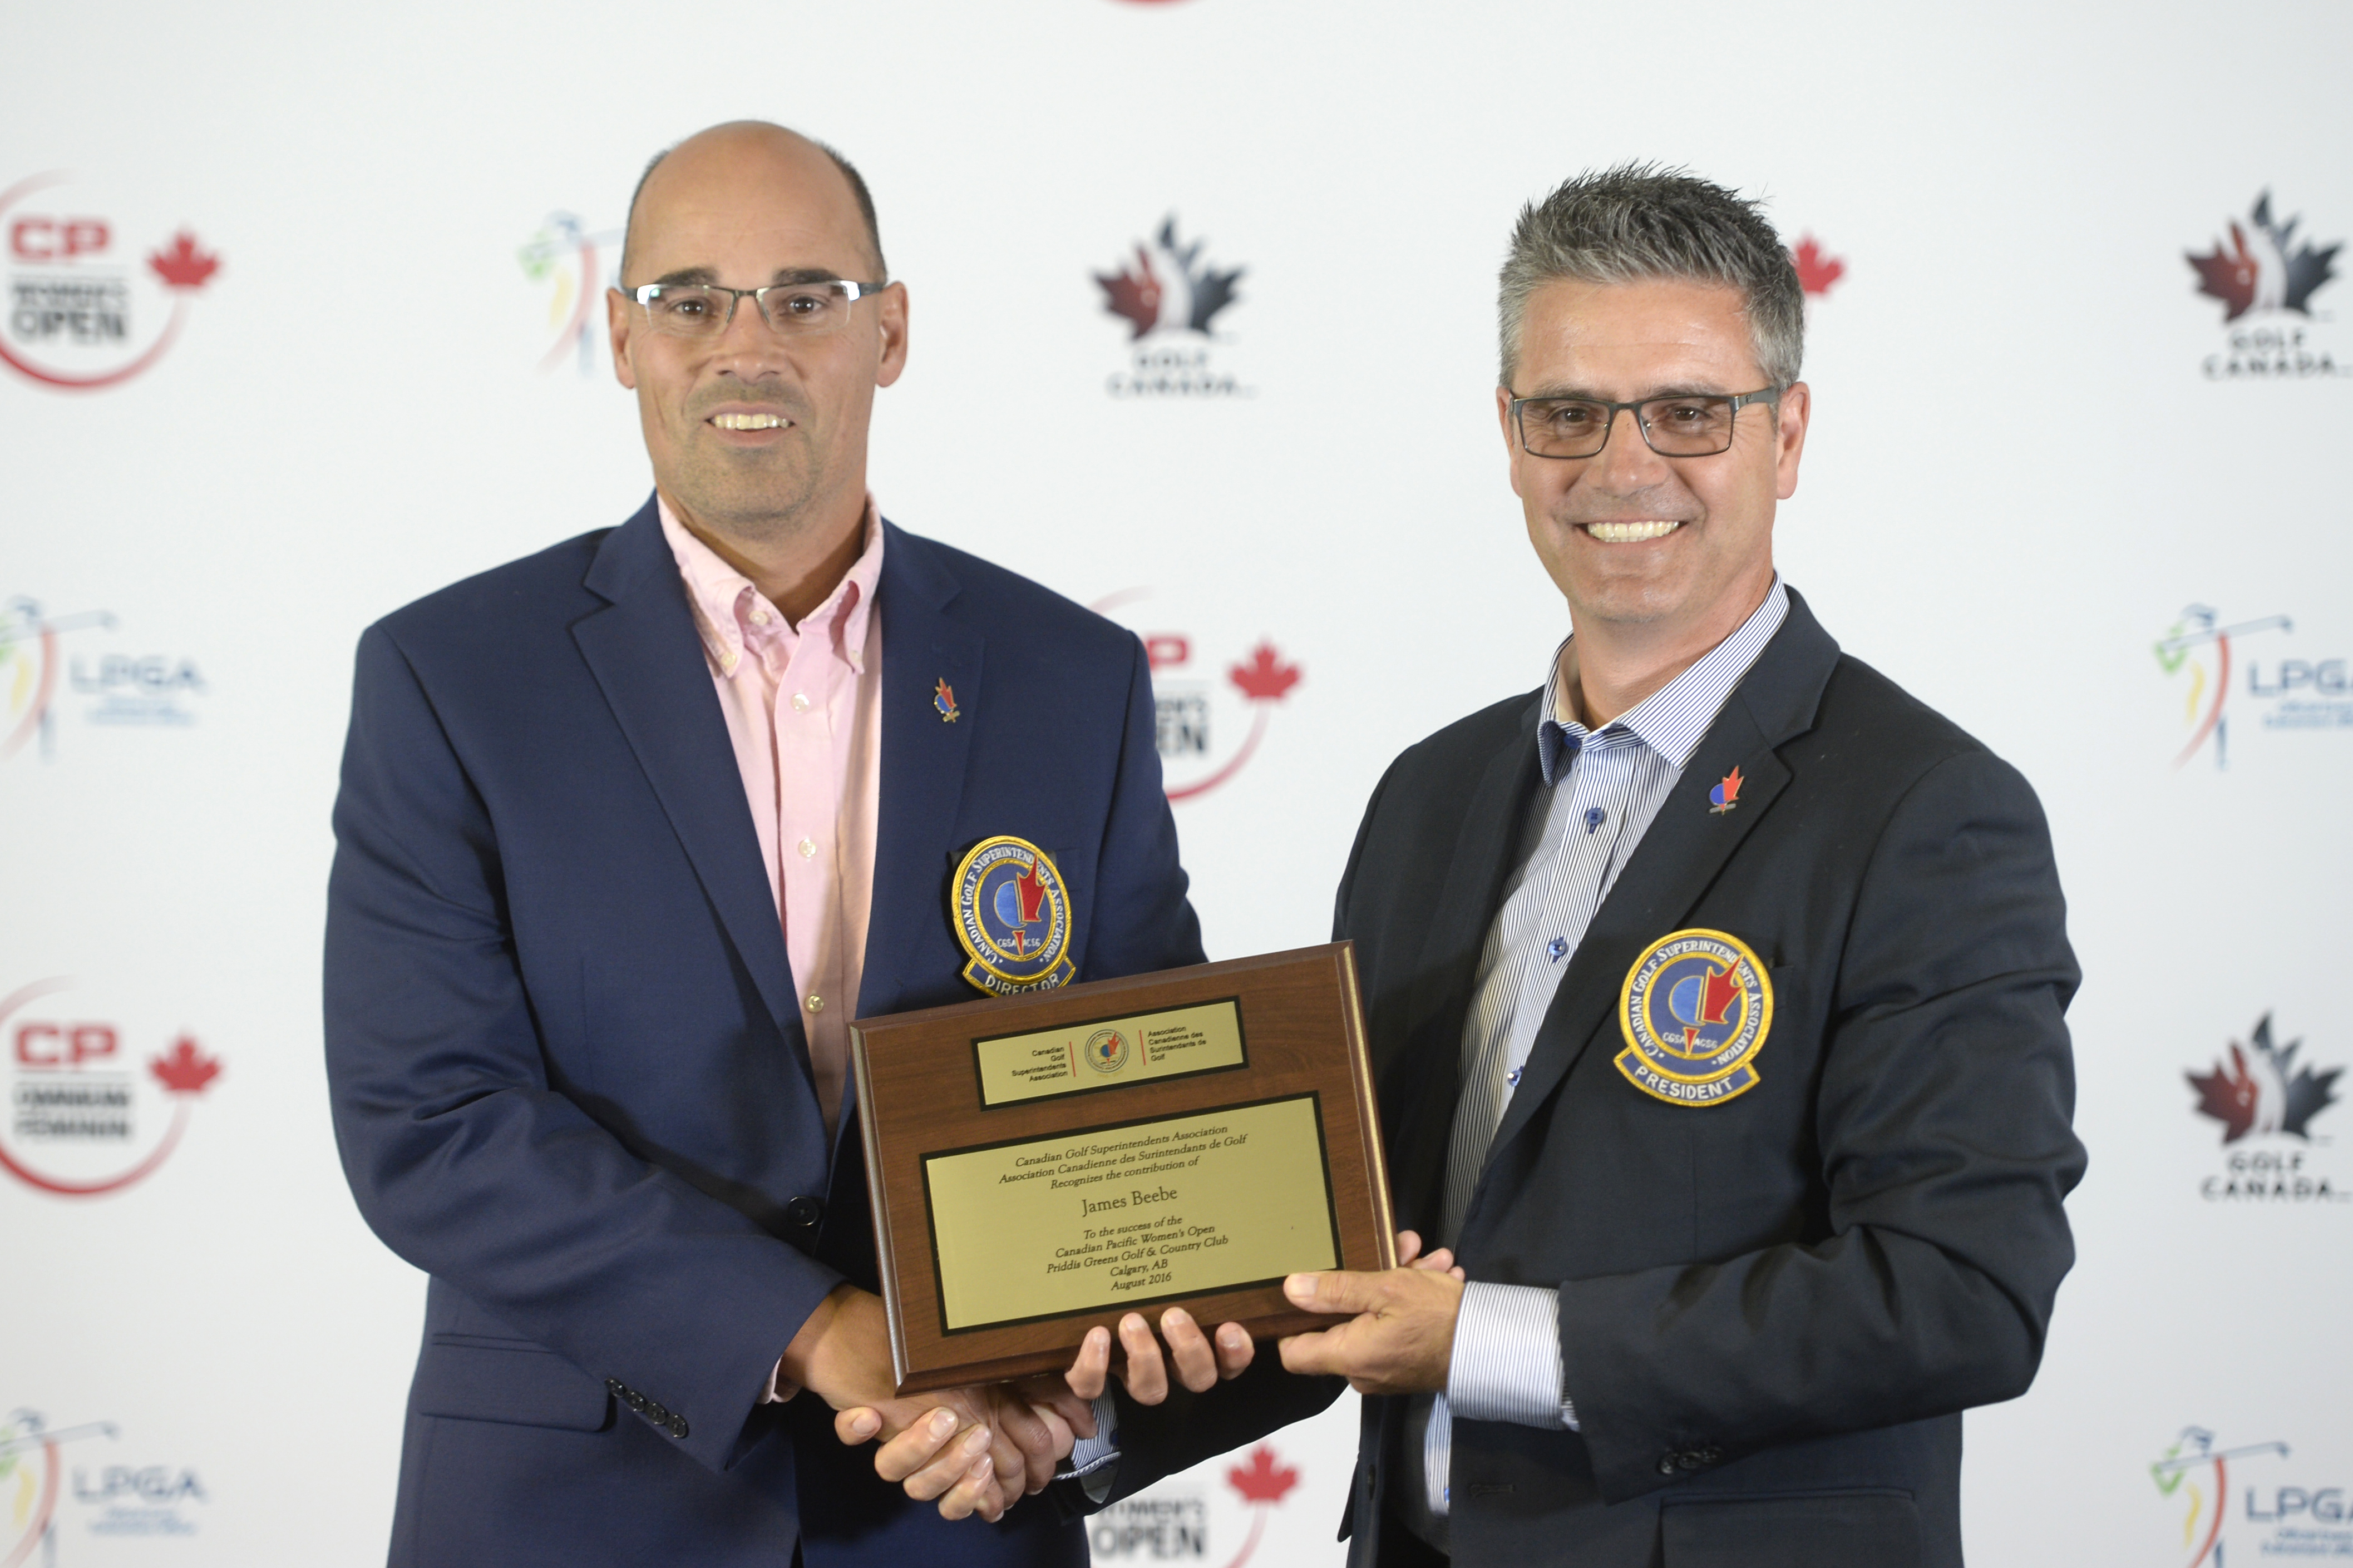 James Beebe of Priddis Greens accepts the Canadian Golf Superintendents Association national tournament plaque from Dustin Zdan